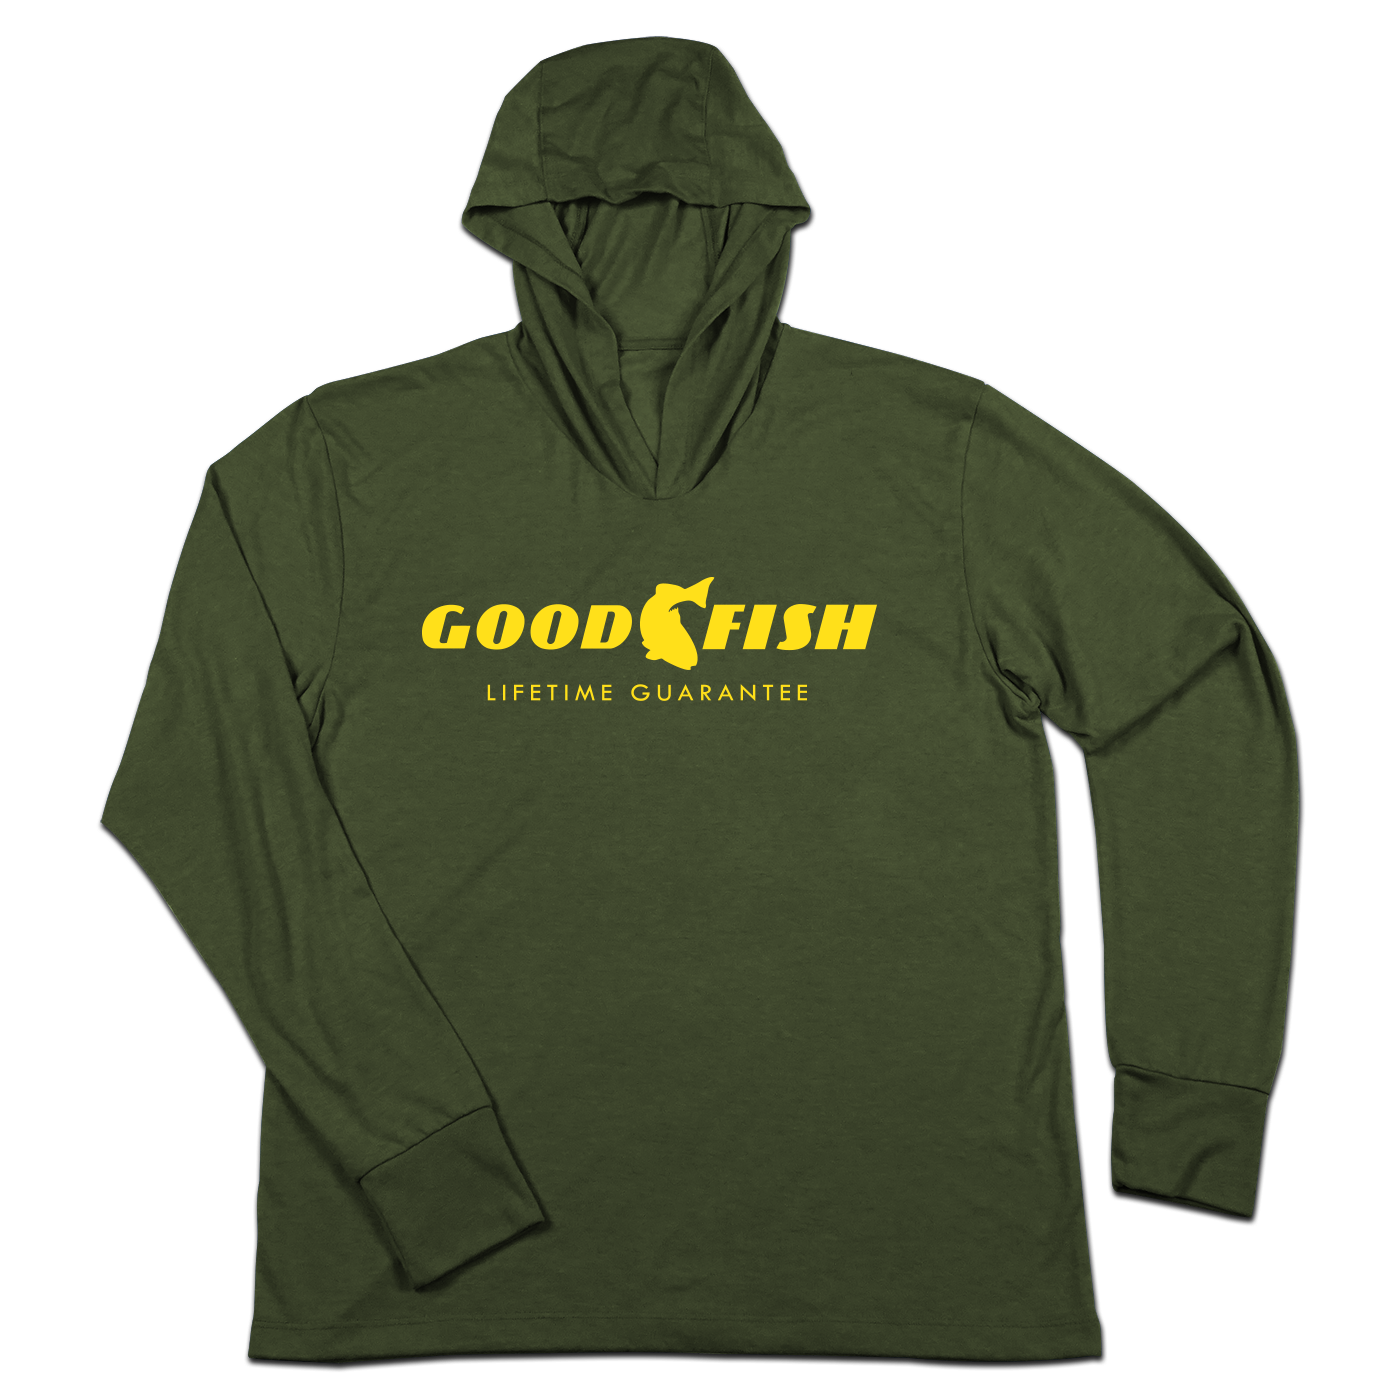 #GOODFISH TriBlend Hoodie Shir - Hat Mount for GoPro